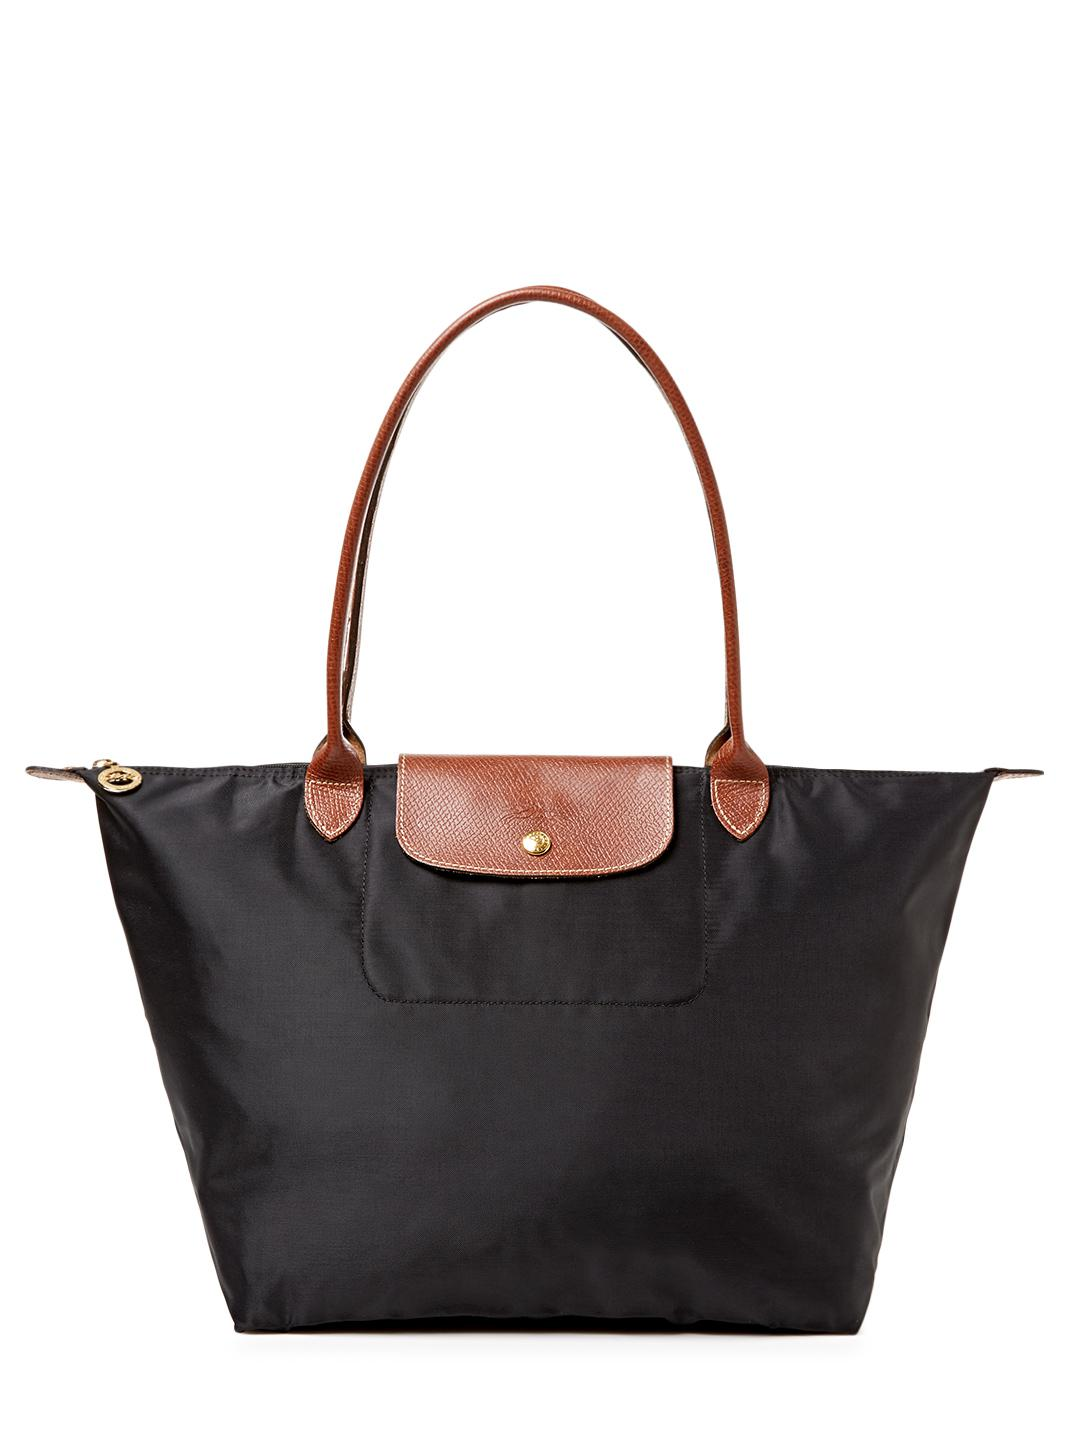 Longchamp Women S Black Le Pliage